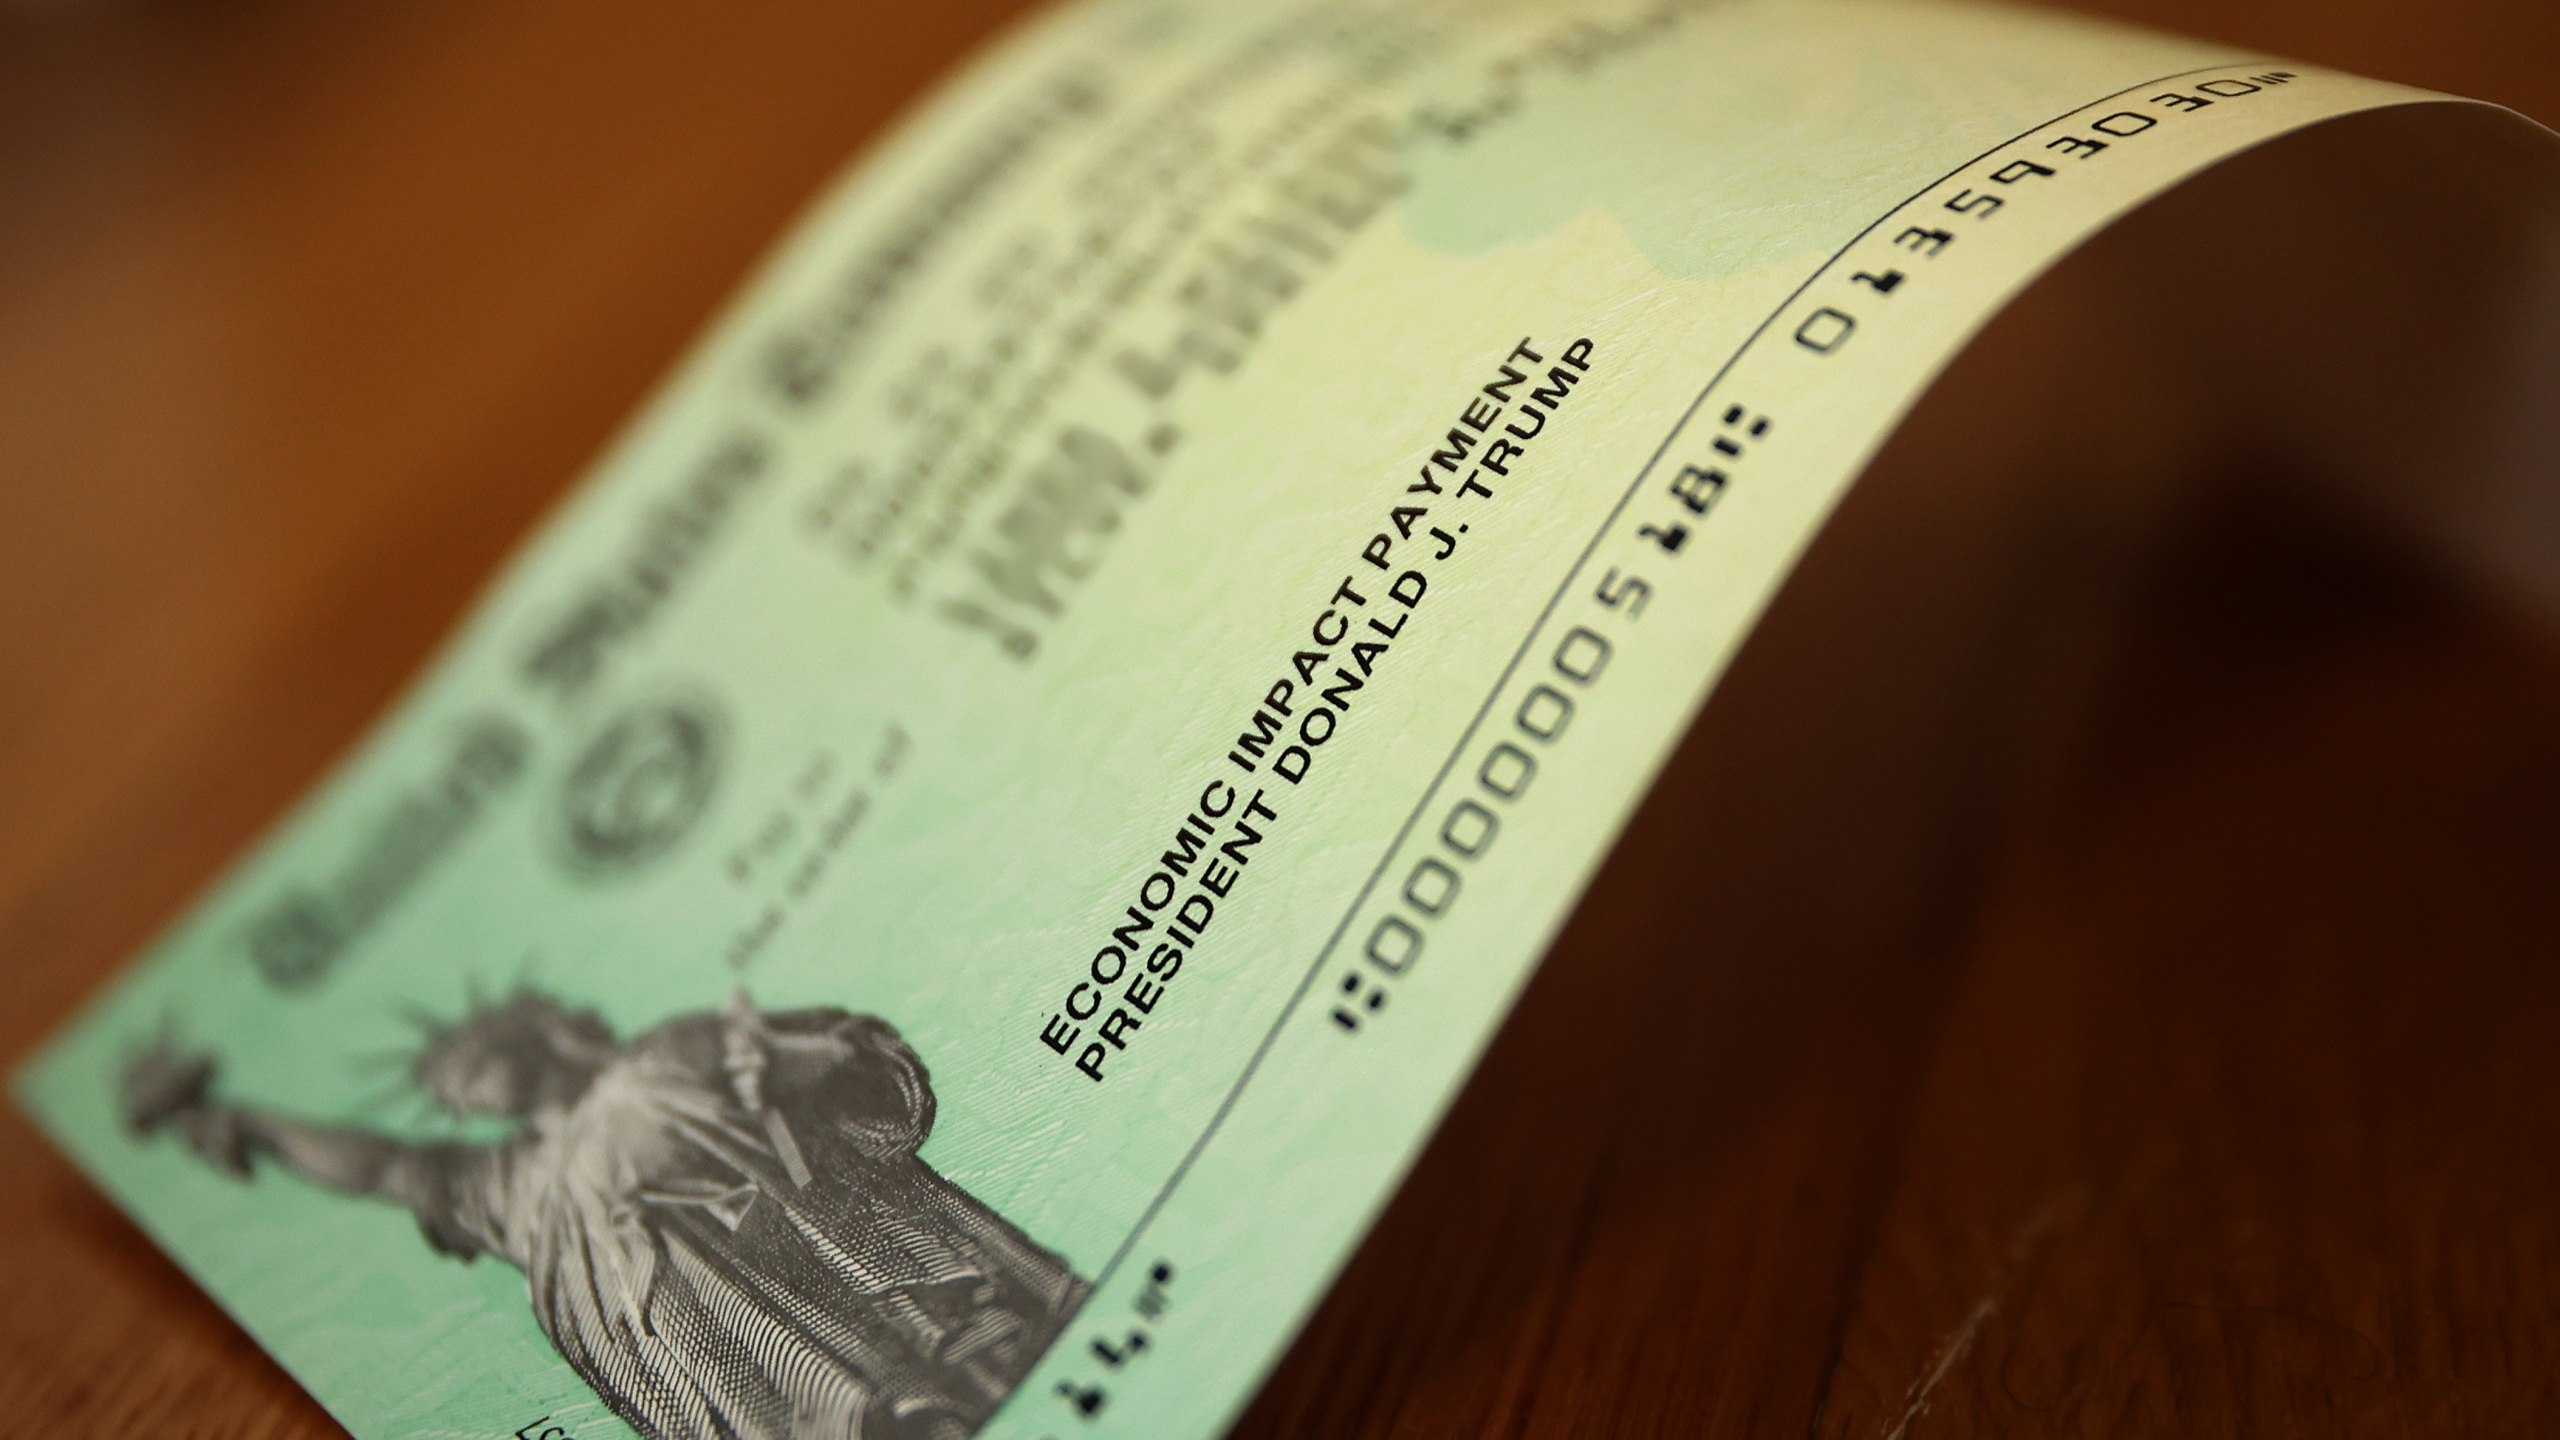 President Donald Trump's name appears on the coronavirus economic assistance checks that were sent to citizens across the country April 29, 2020 in Washington, DC. (Chip Somodevilla/Getty Images)